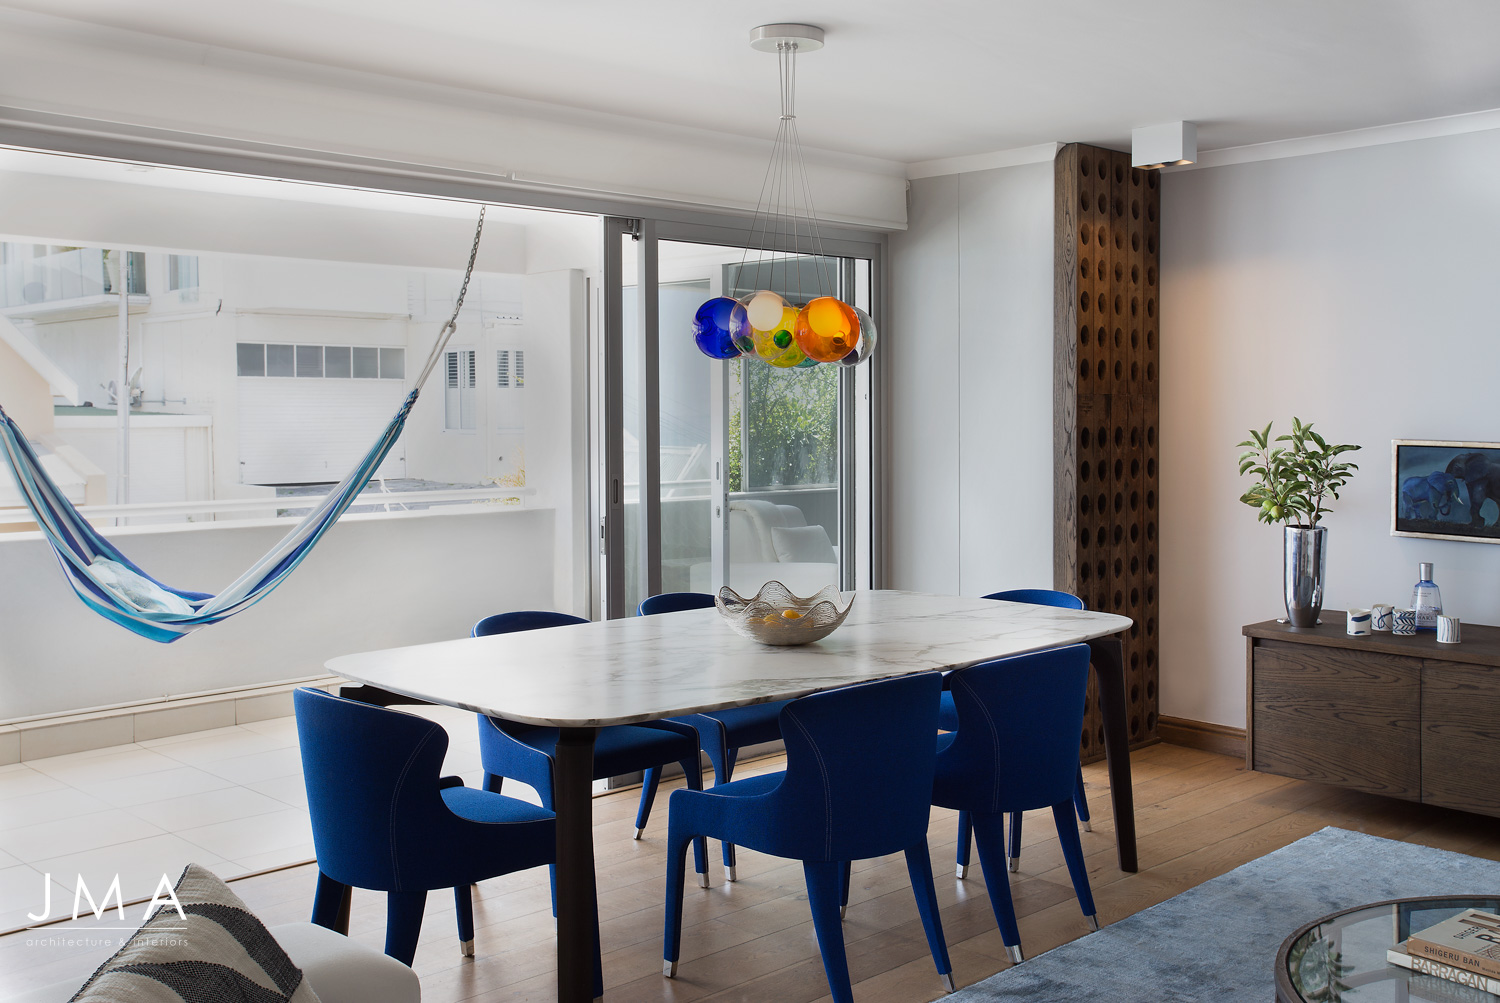 Atlantic Views Sea Point apartment interior renovation by Jenny Mills Architects - Dining Area